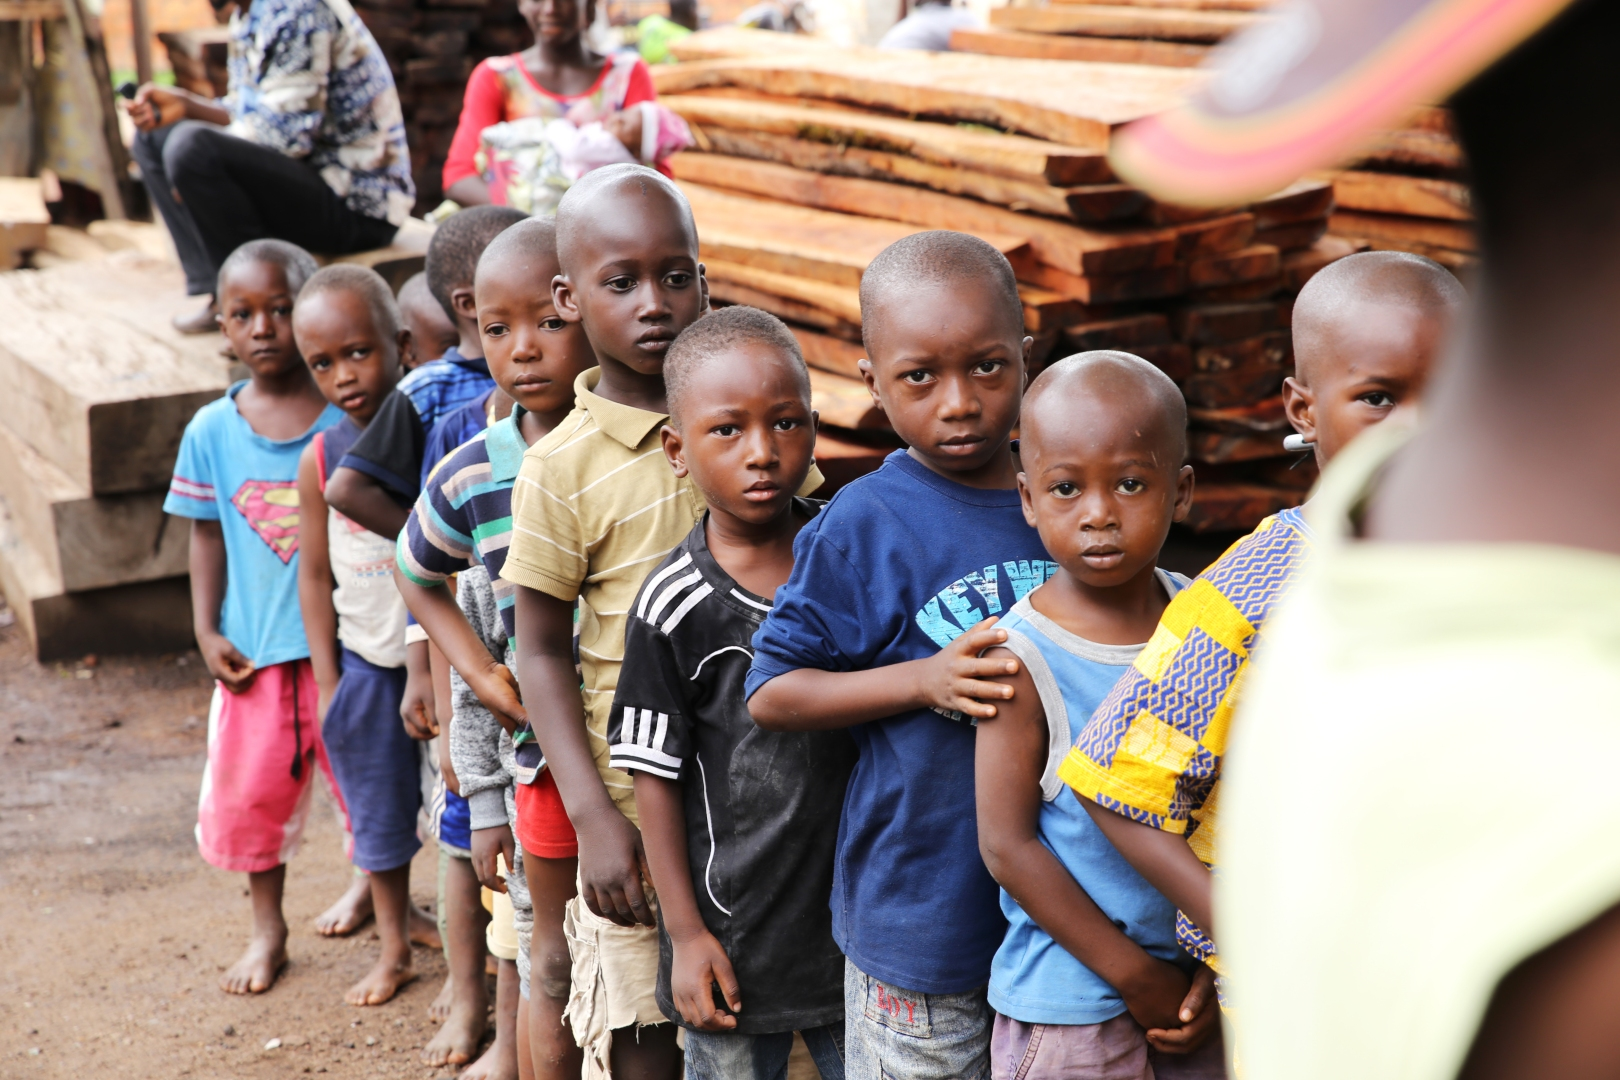 Children line up to receive vitamin A supplementation in Guinea.